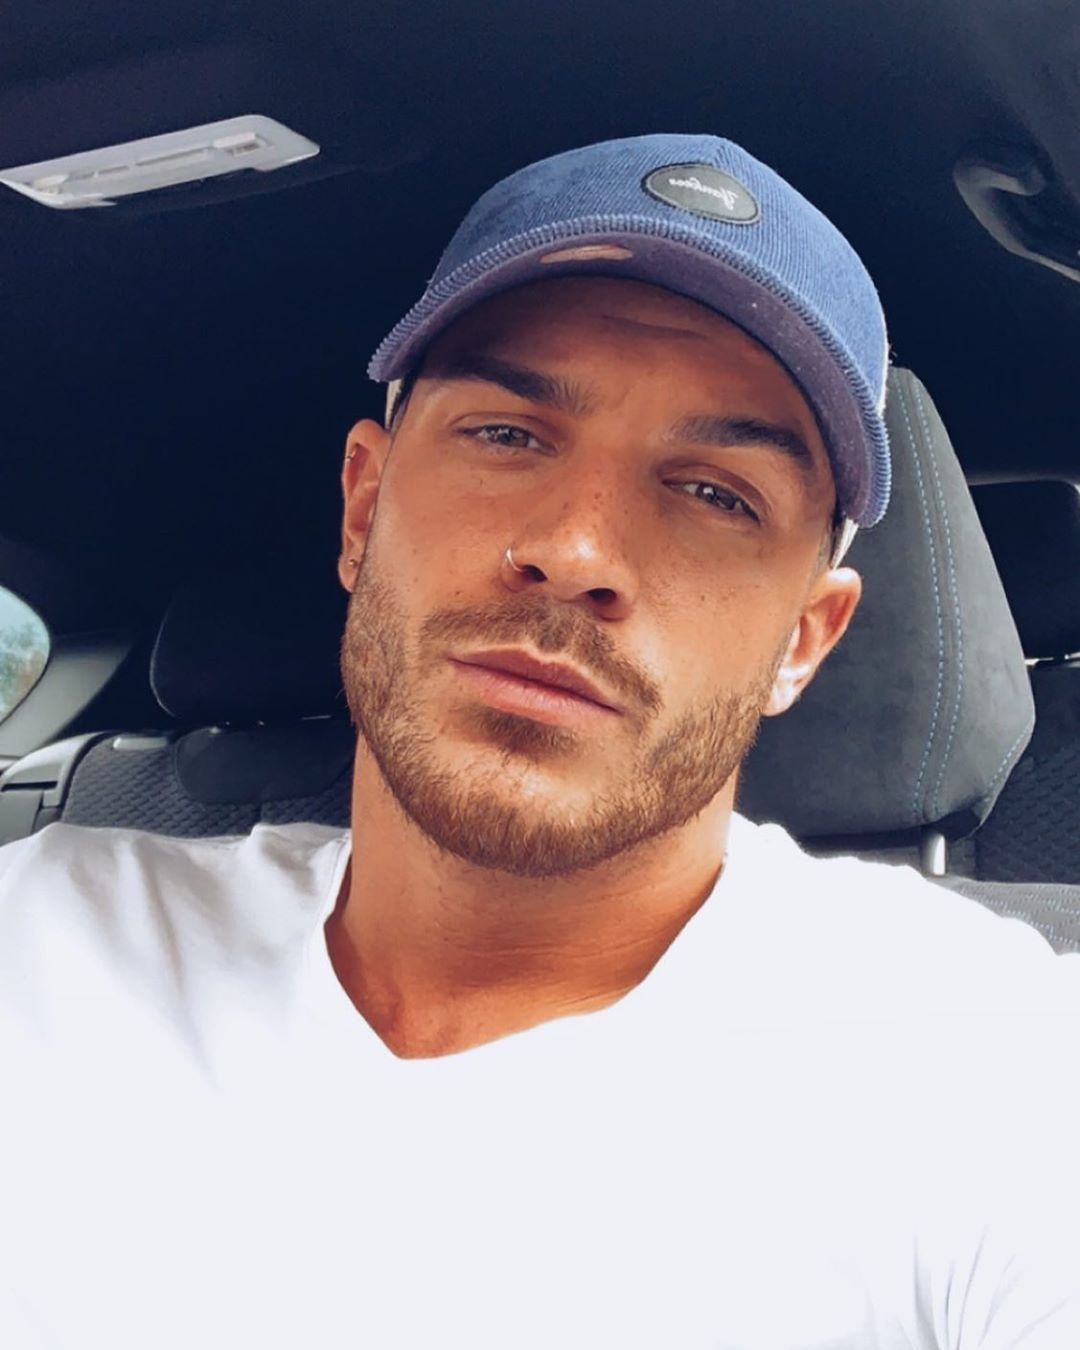 Image may contain: Dan Rose, Love Island, Casa Amor, villa, contestant, Islander, cast, bombshell, late, arrival, new, gossip, latest, news, rumours, Headrest, Beard, Clothing, Apparel, Human, Person, Face, Cushion